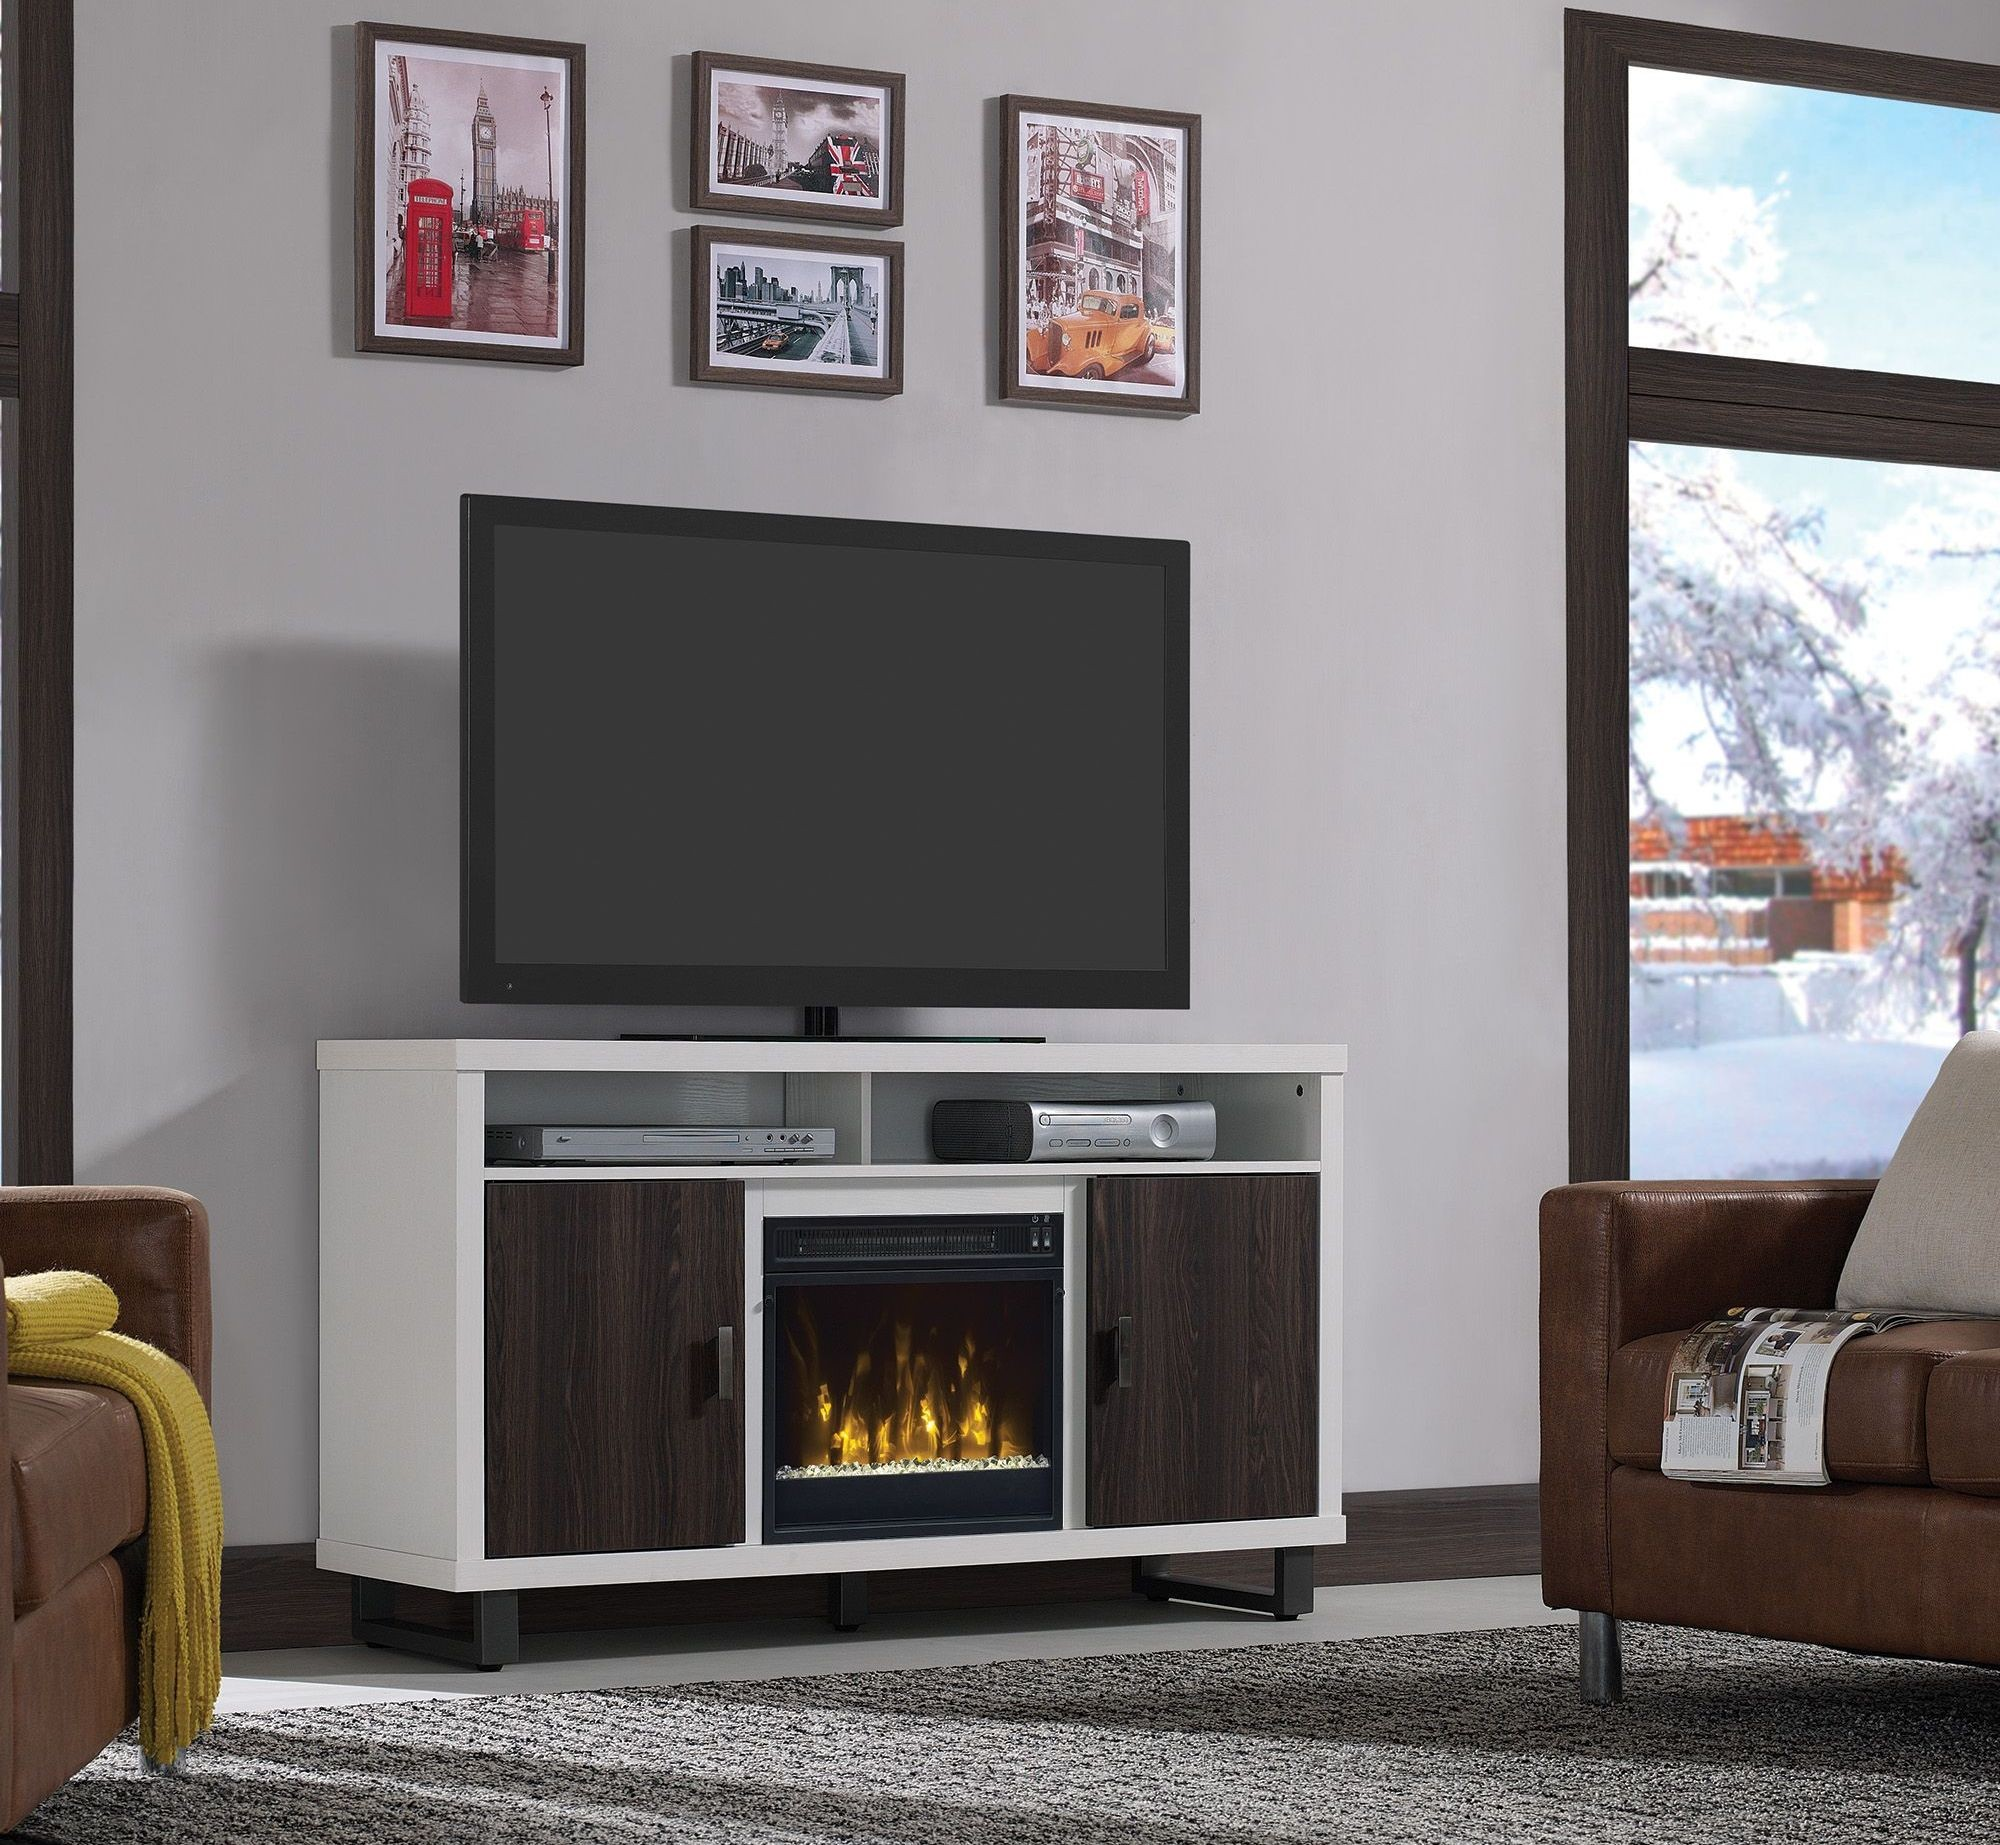 centers valley category media center entertainment custom cabinets floating in built shelves fireplace area